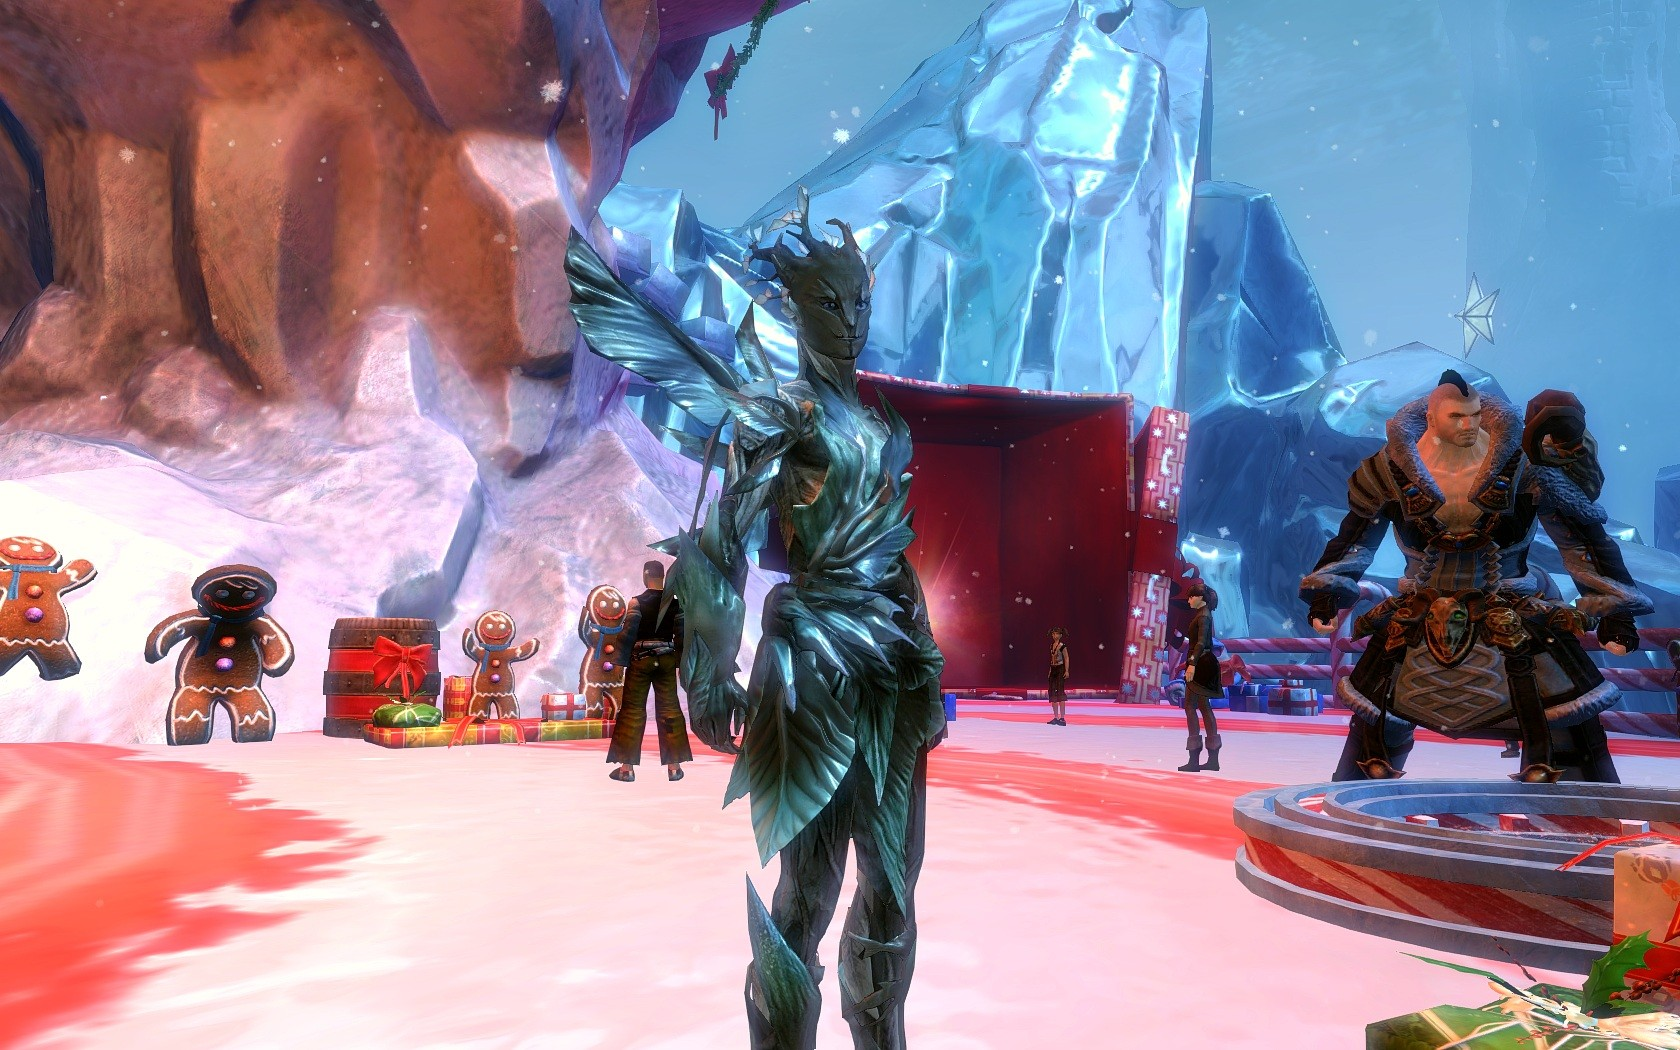 Guild Wars 2 - Sylvari can look so cool sometimes =P